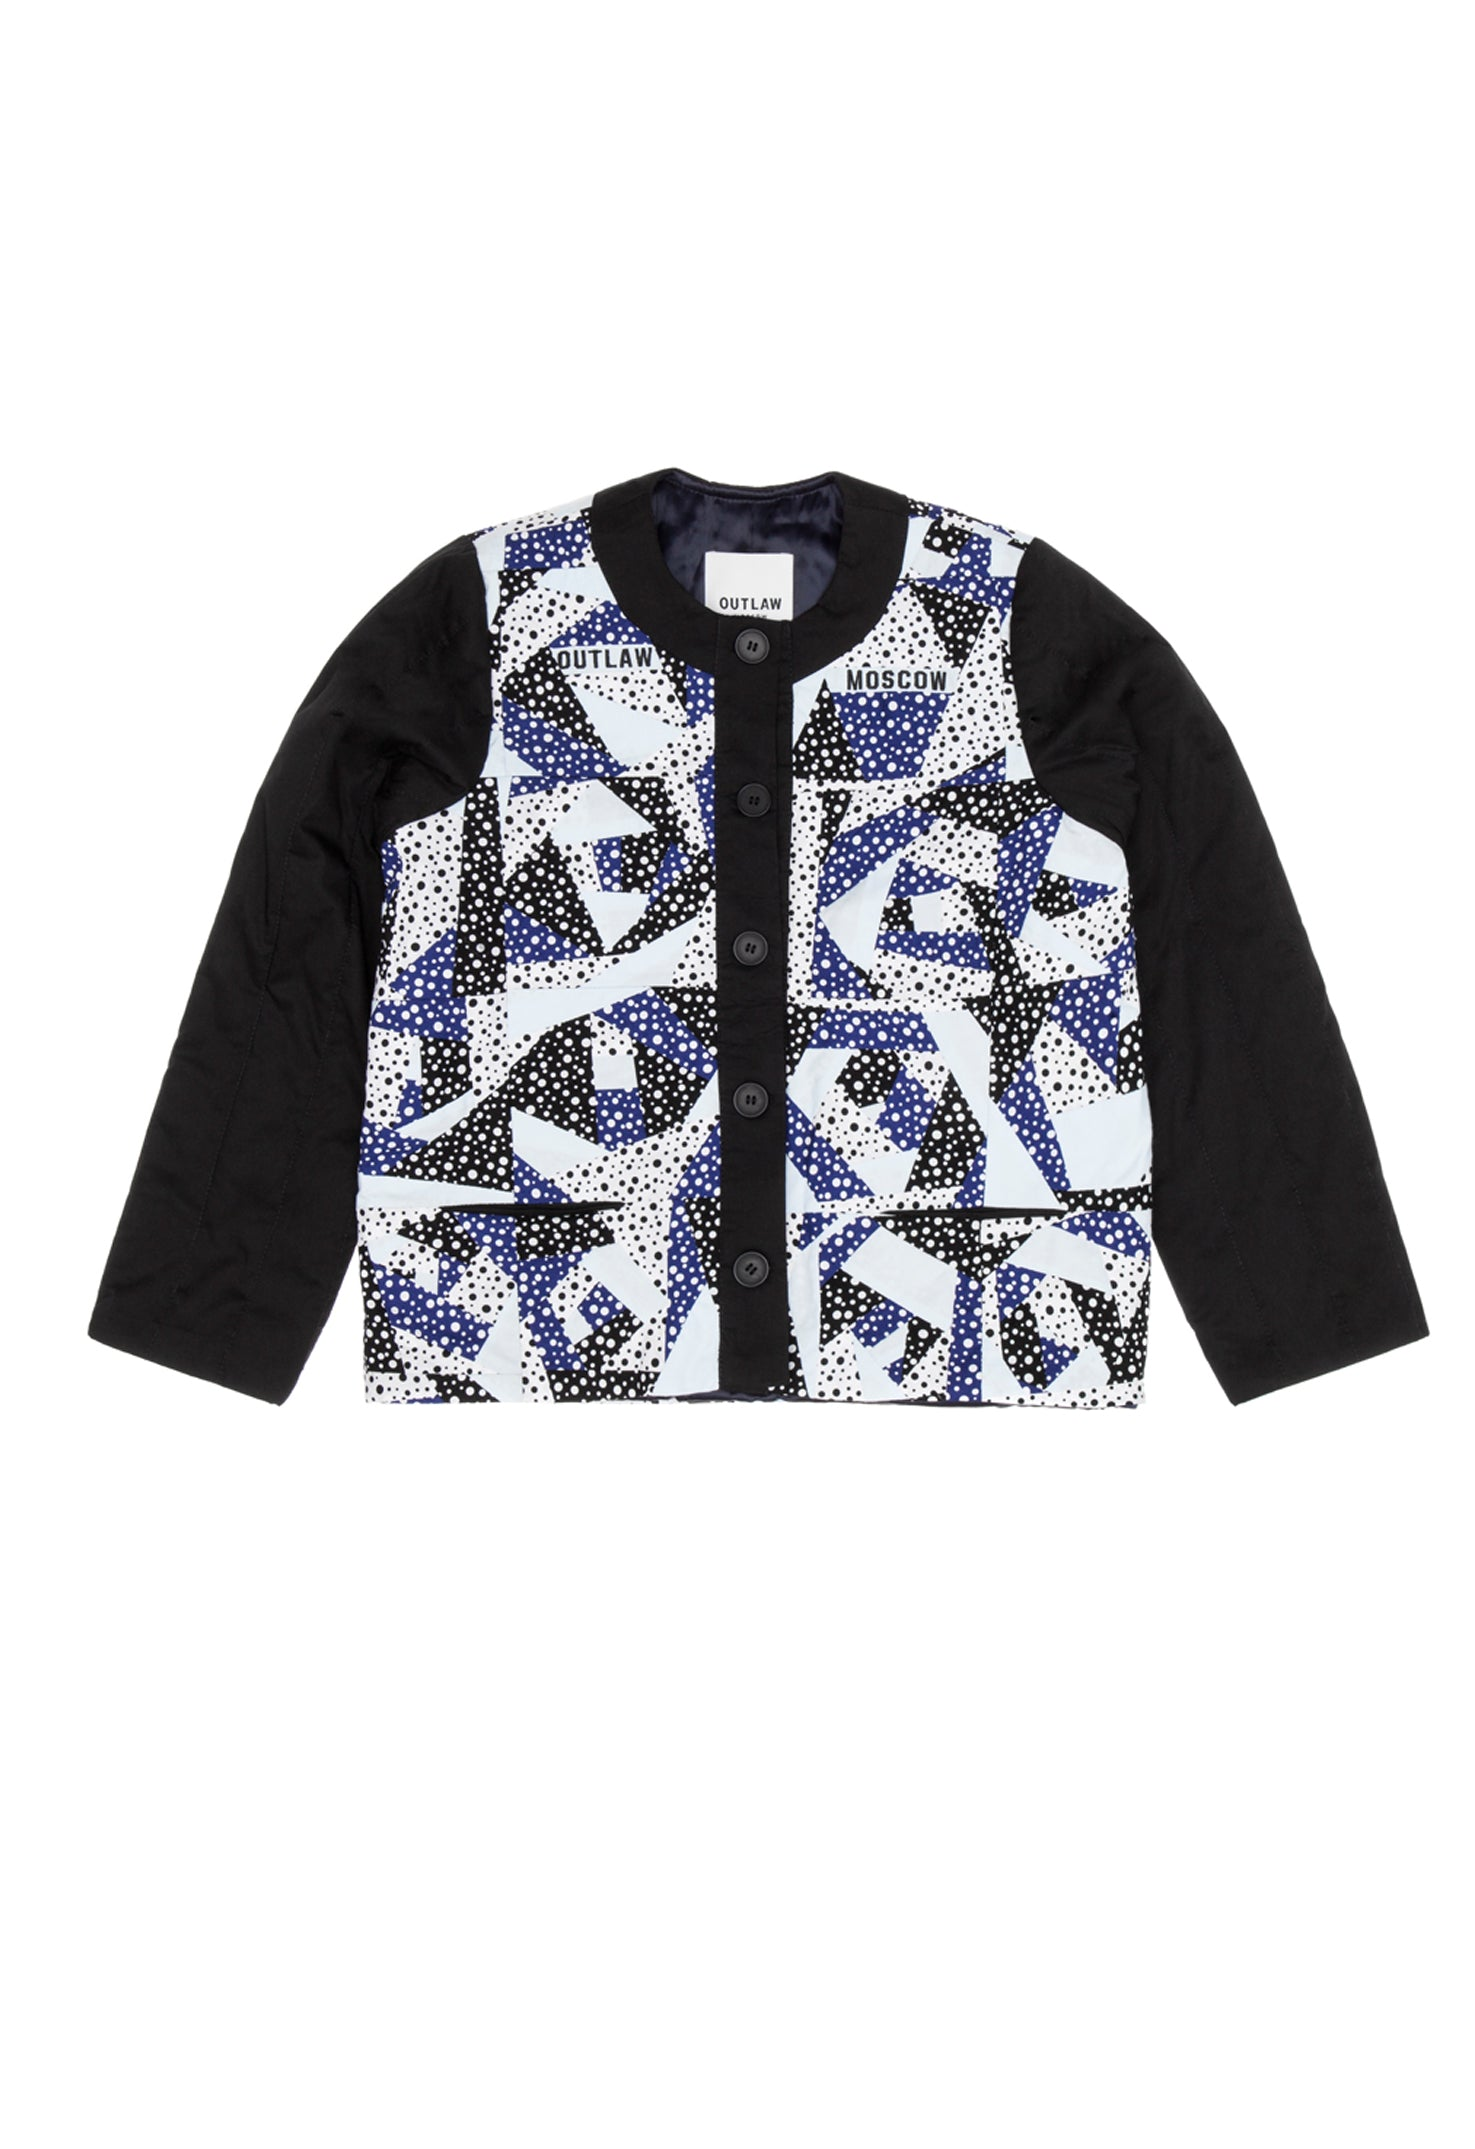 Patchwork Bomber jacket